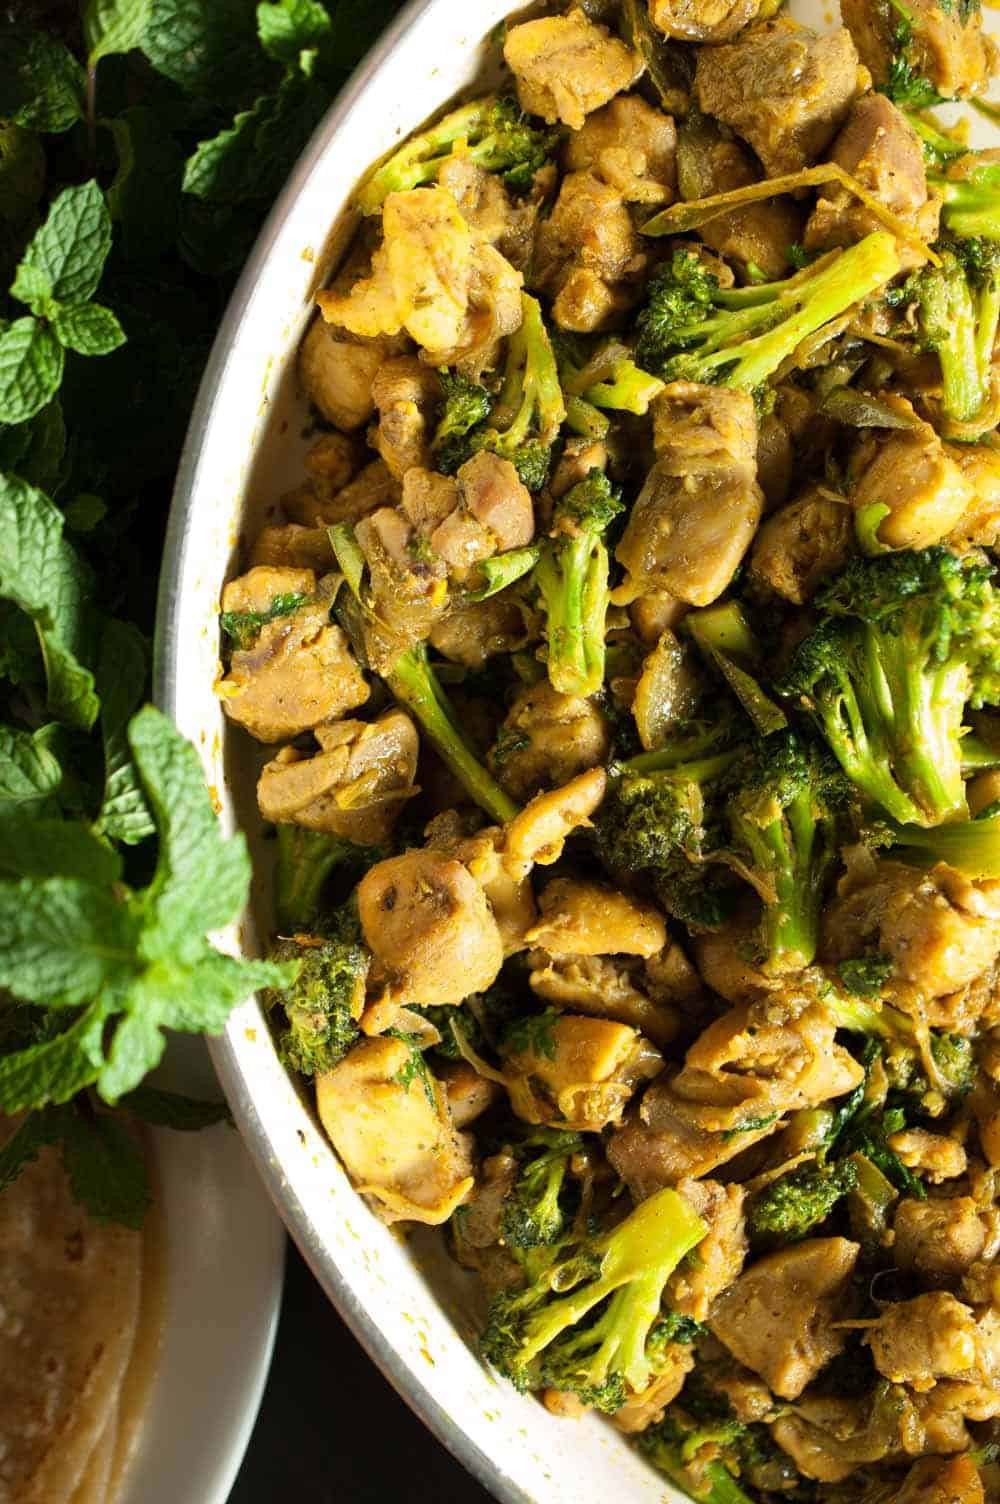 Healthy Chicken And Broccoli Stir Fry  Indian Healthy Chicken and Broccoli Stir Fry Recipe